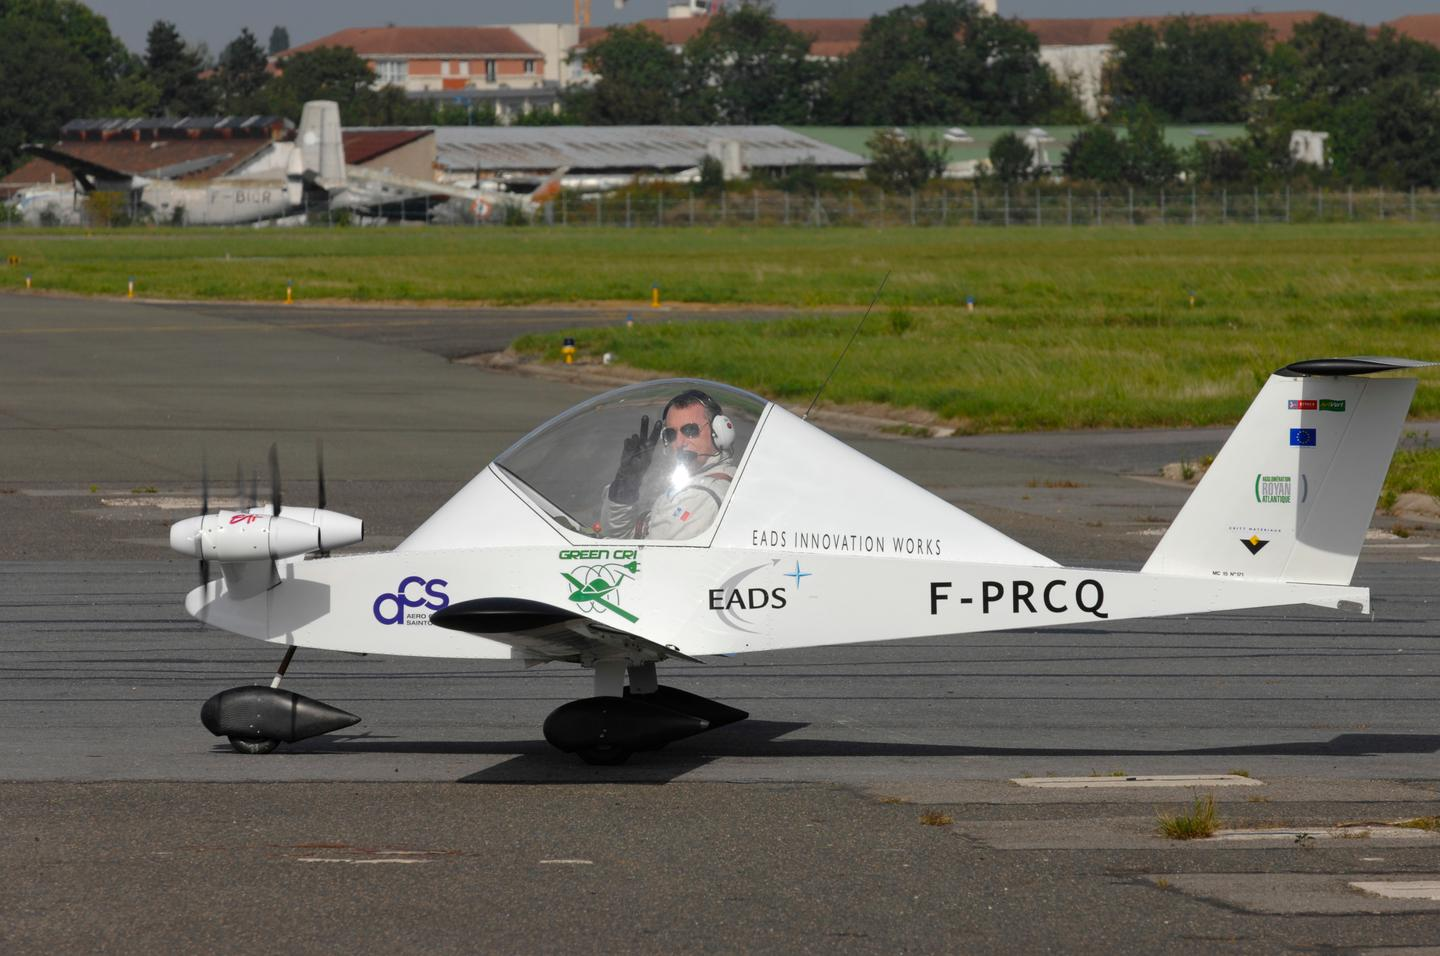 Pilot Didier Esteyne readies the Green Cri for its maiden flight above Le Bourget airfield in Paris